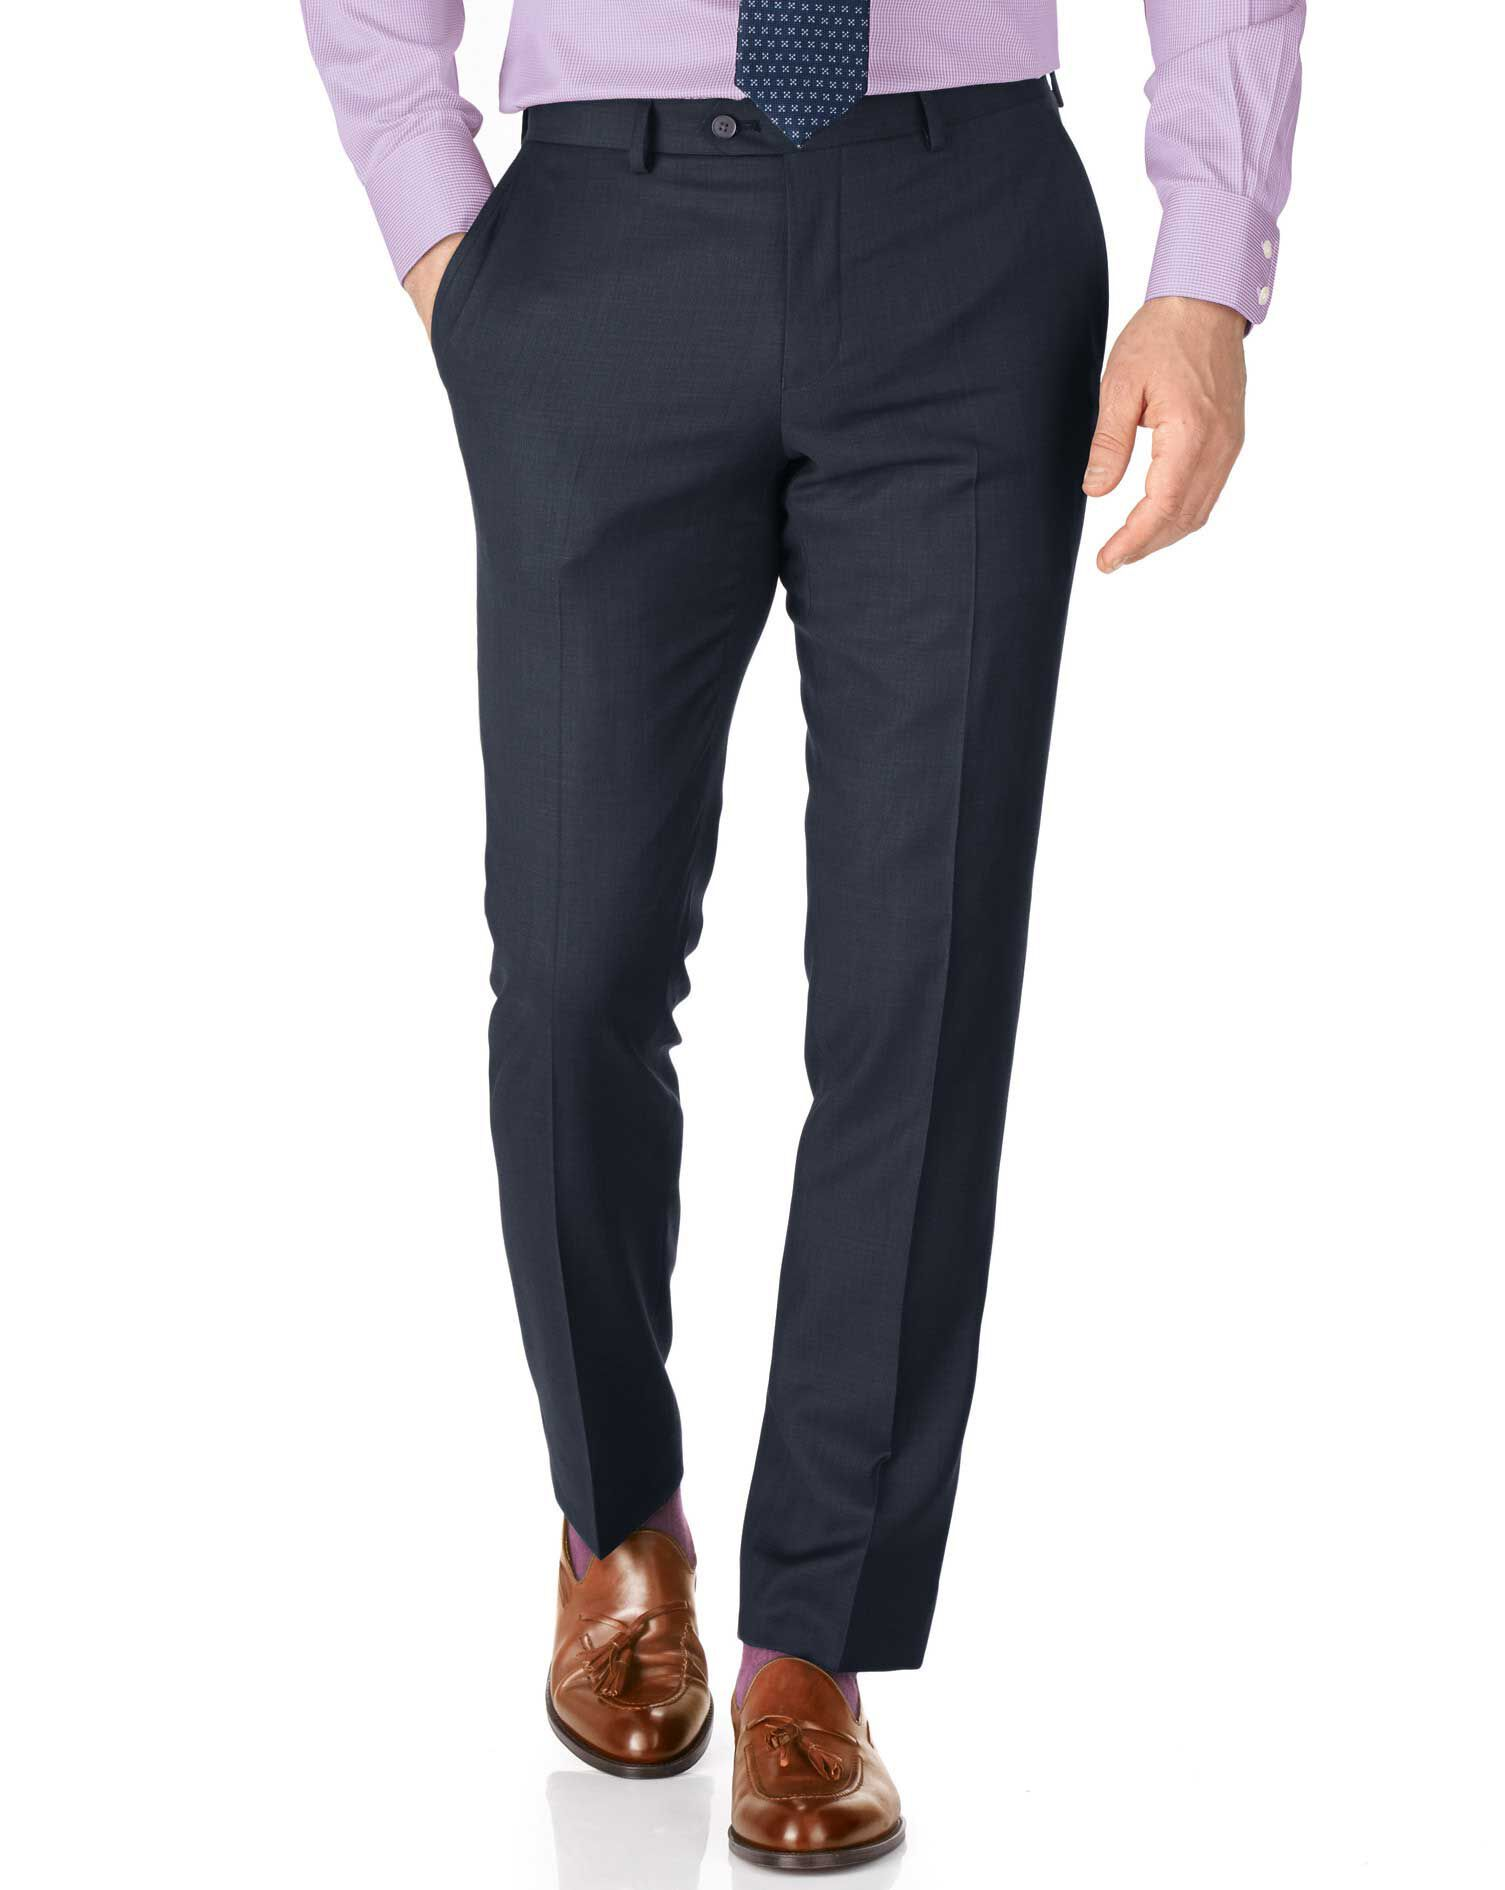 Blue Slim Fit Sharkskin Travel Suit Trousers Size W36 L34 by Charles Tyrwhitt